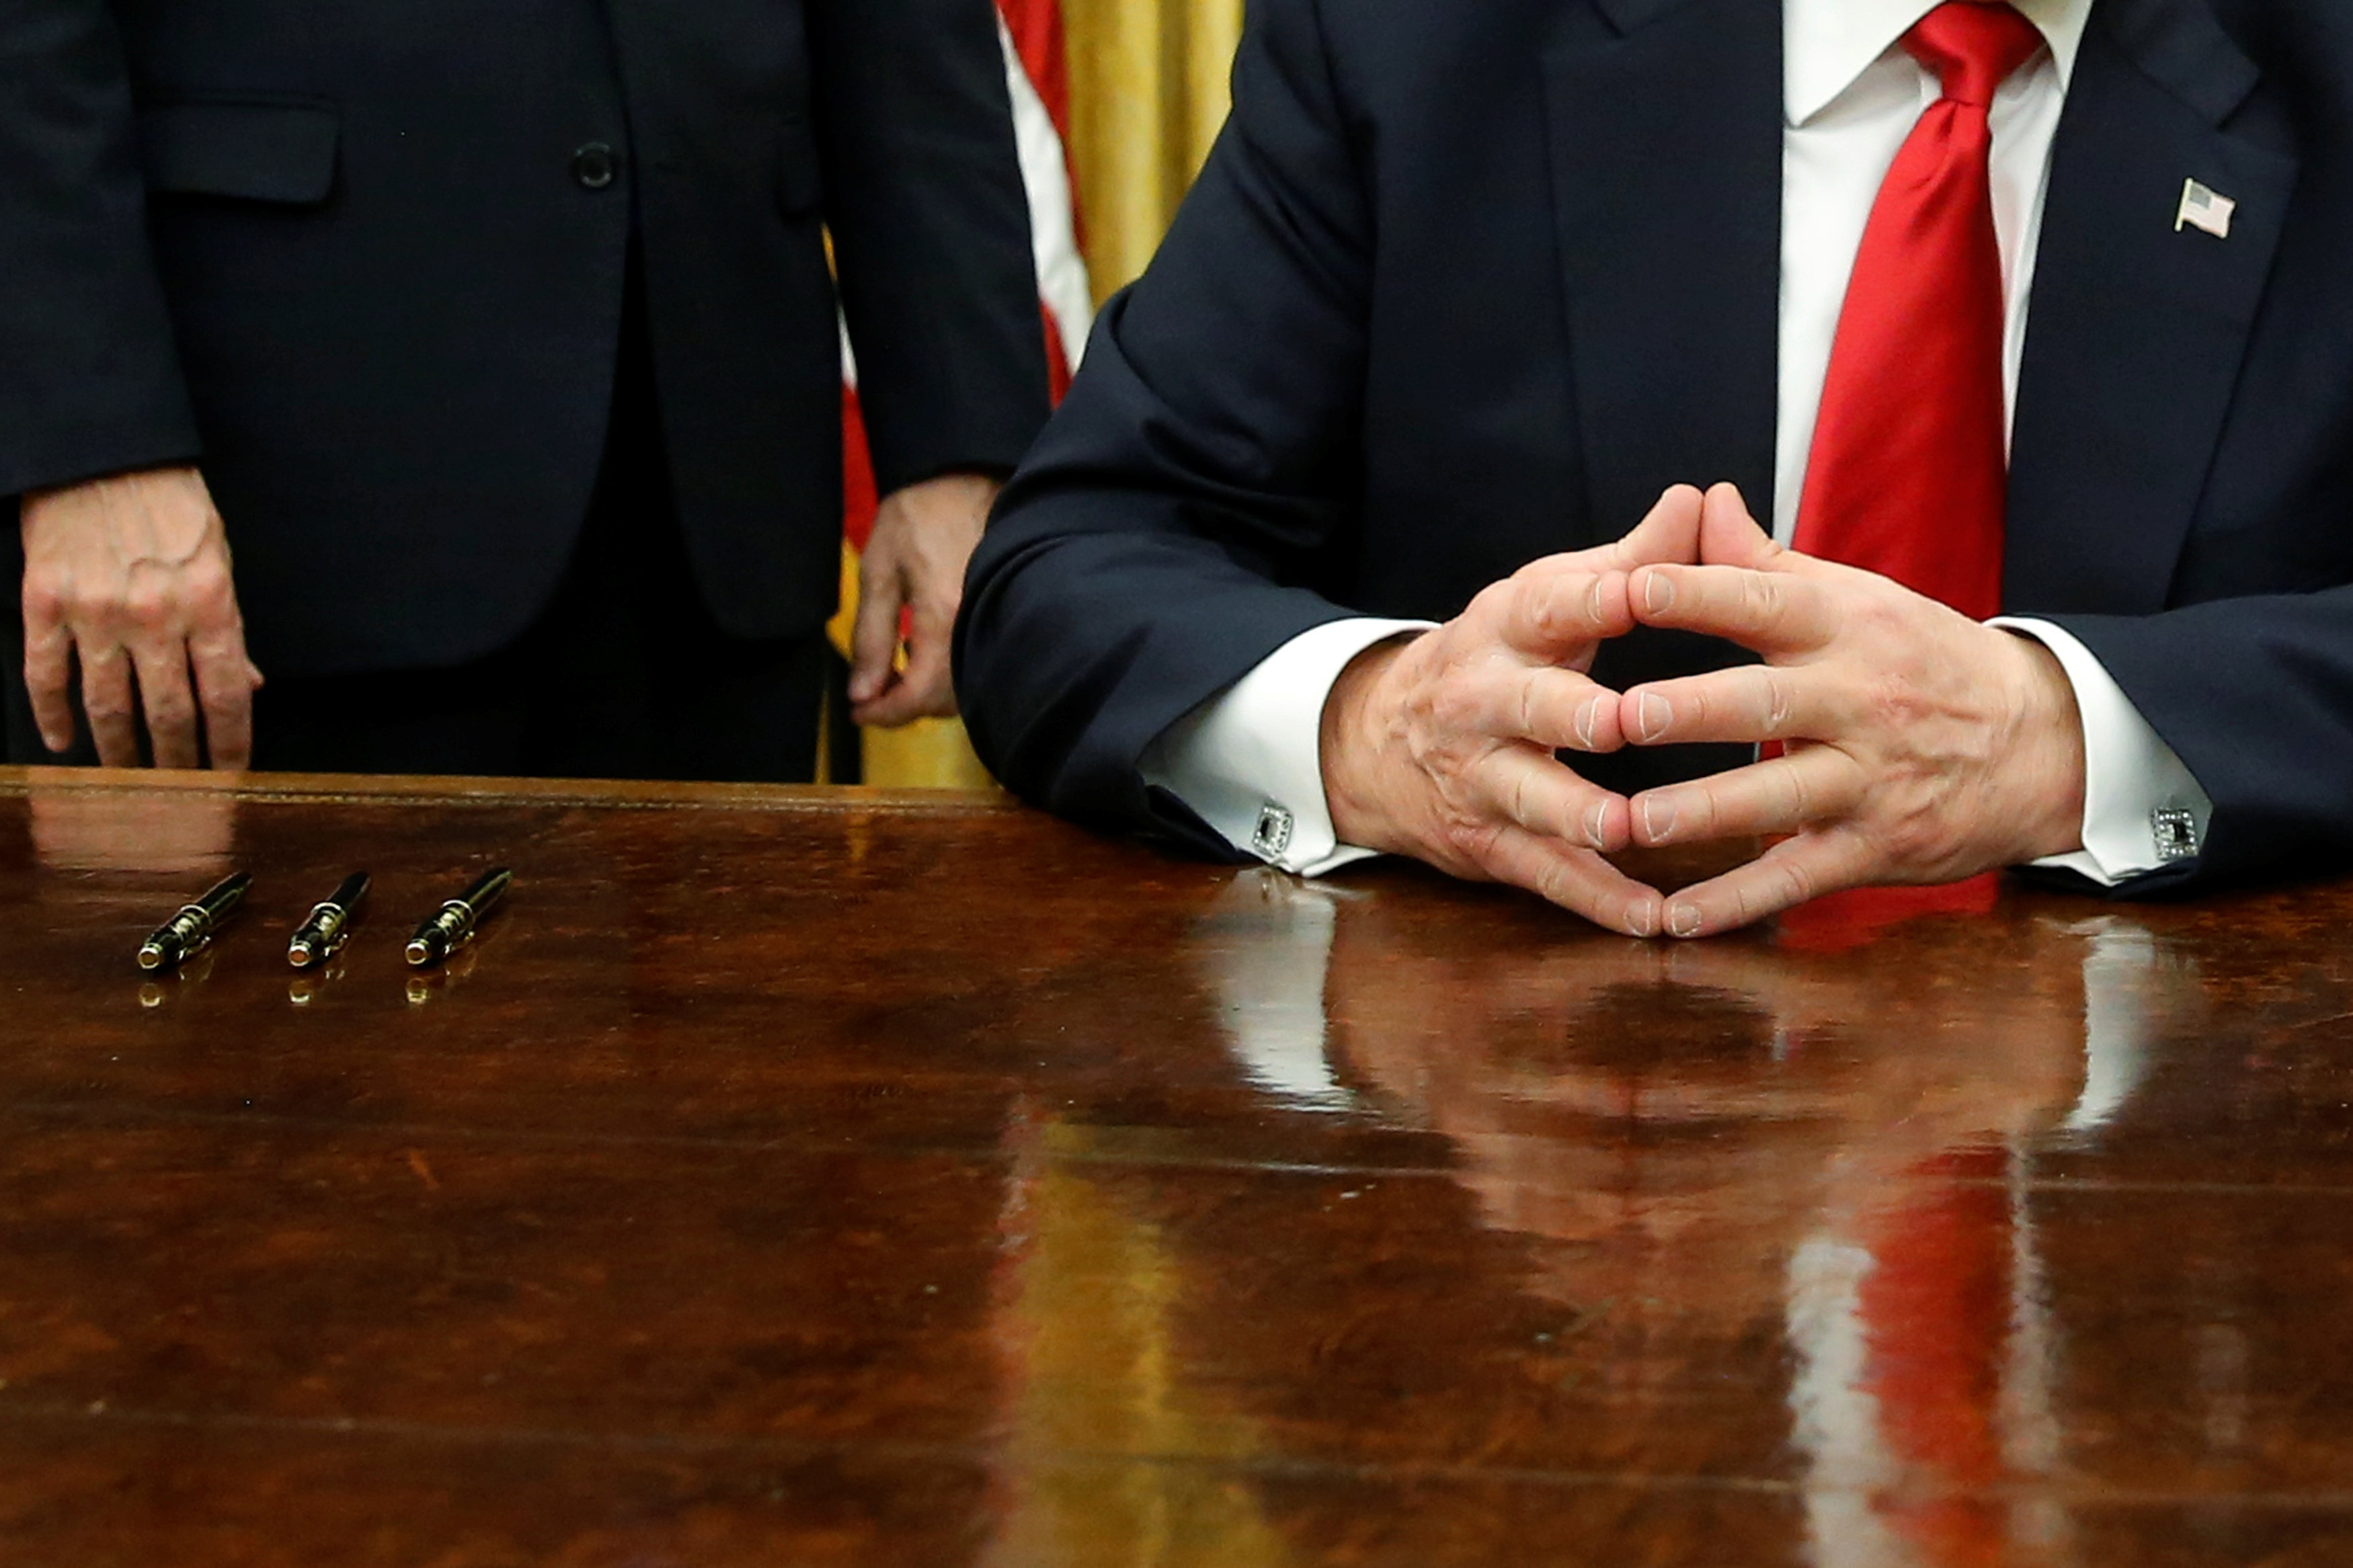 US President Donald Trump waits to sign his first executive orders in the Oval Office at the White House in Washington, US, Jan 20, 2017. Reuters